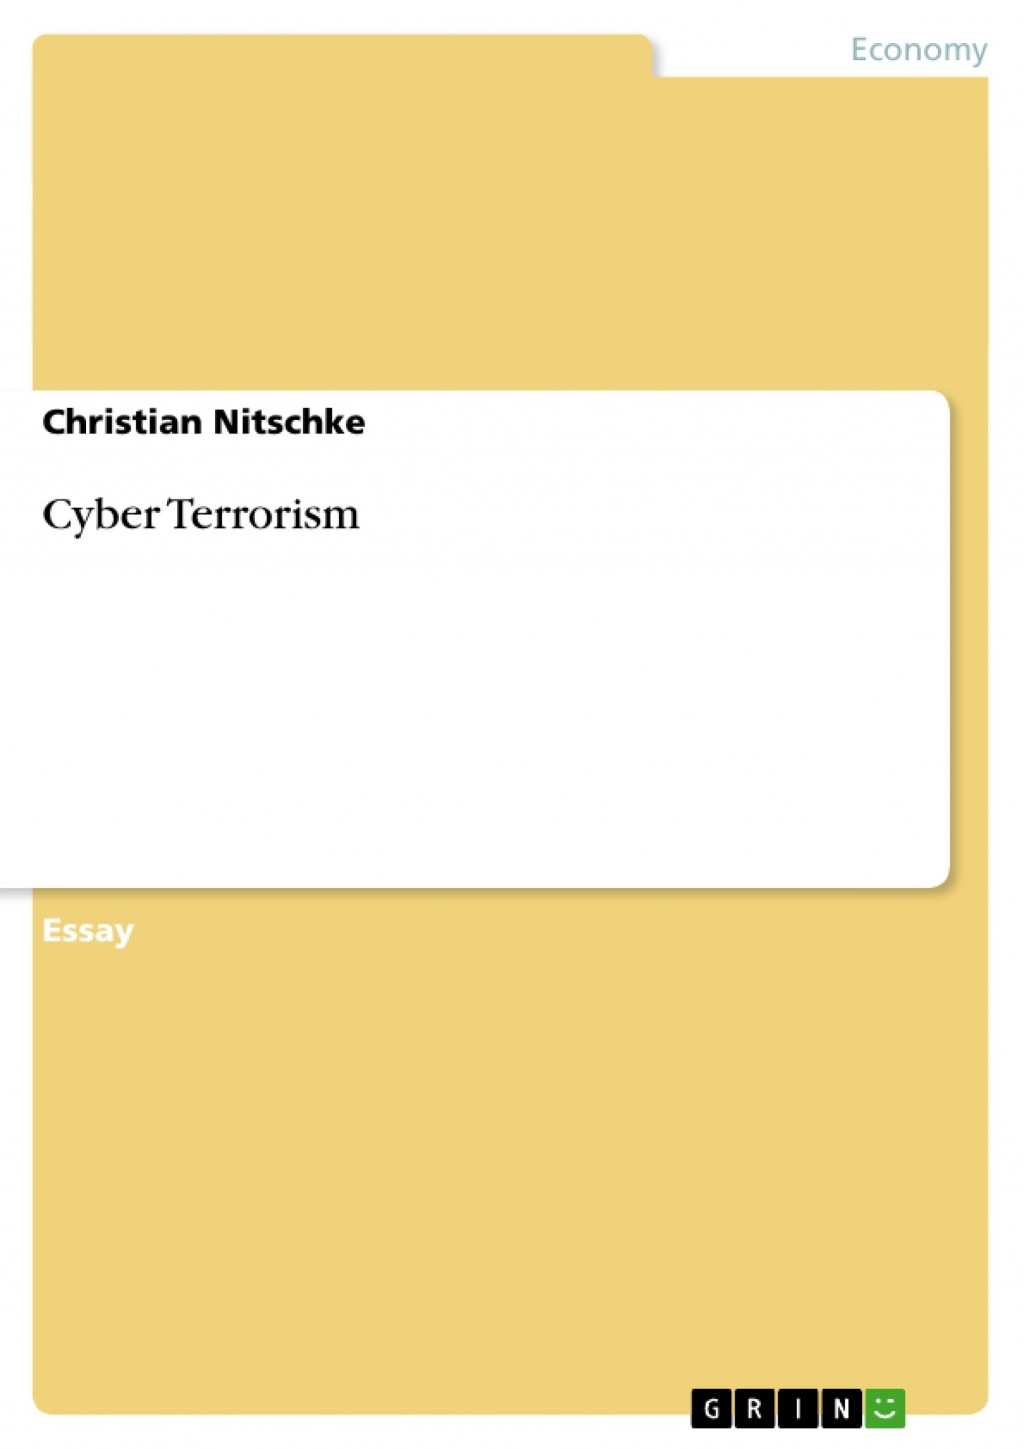 008 Research Paper 25026 0 Cyber Terrorism Imposing Essay Large